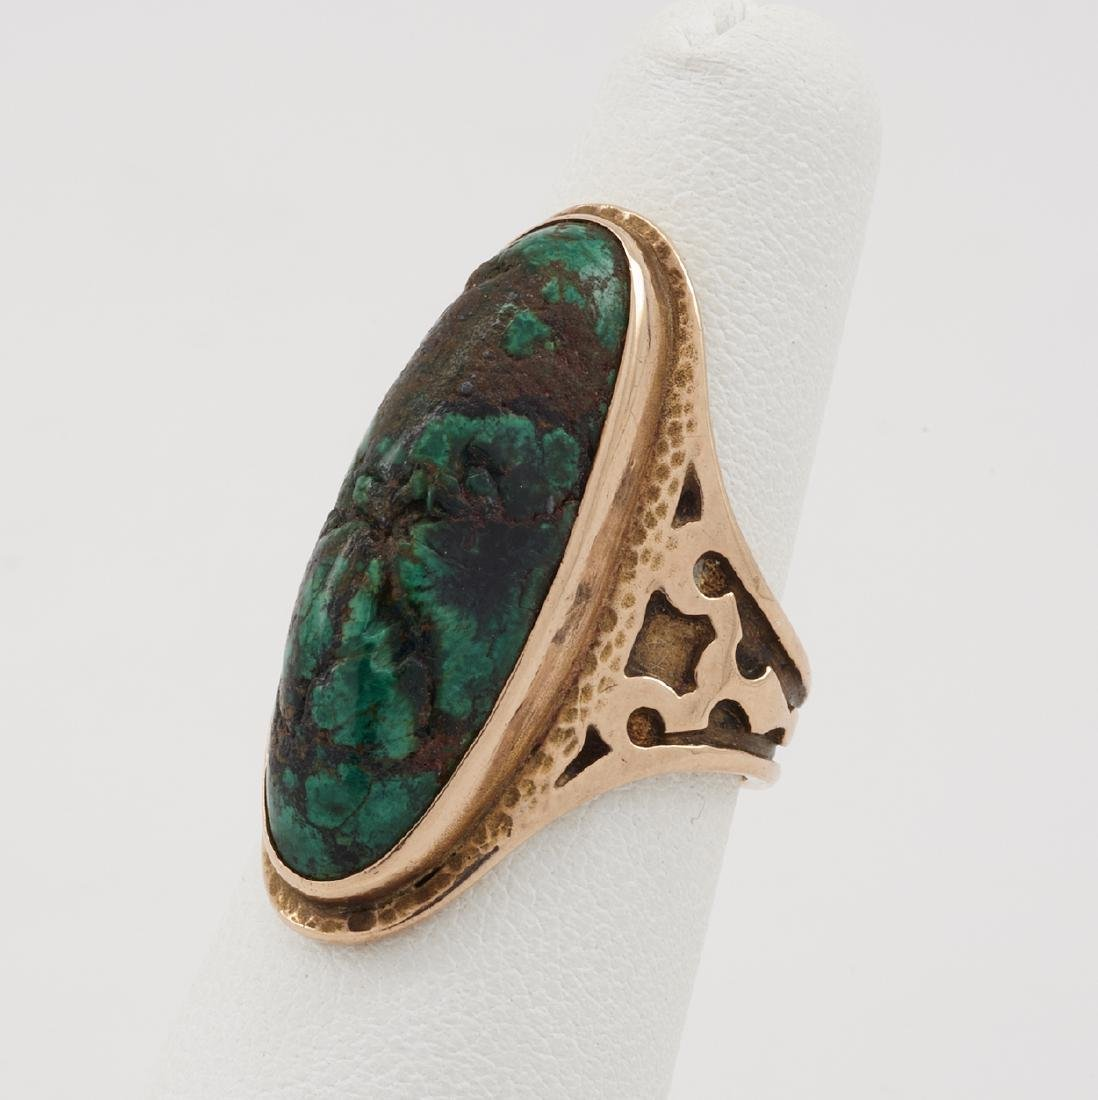 14k Yellow gold, turquoise, Arts & Crafts style ring